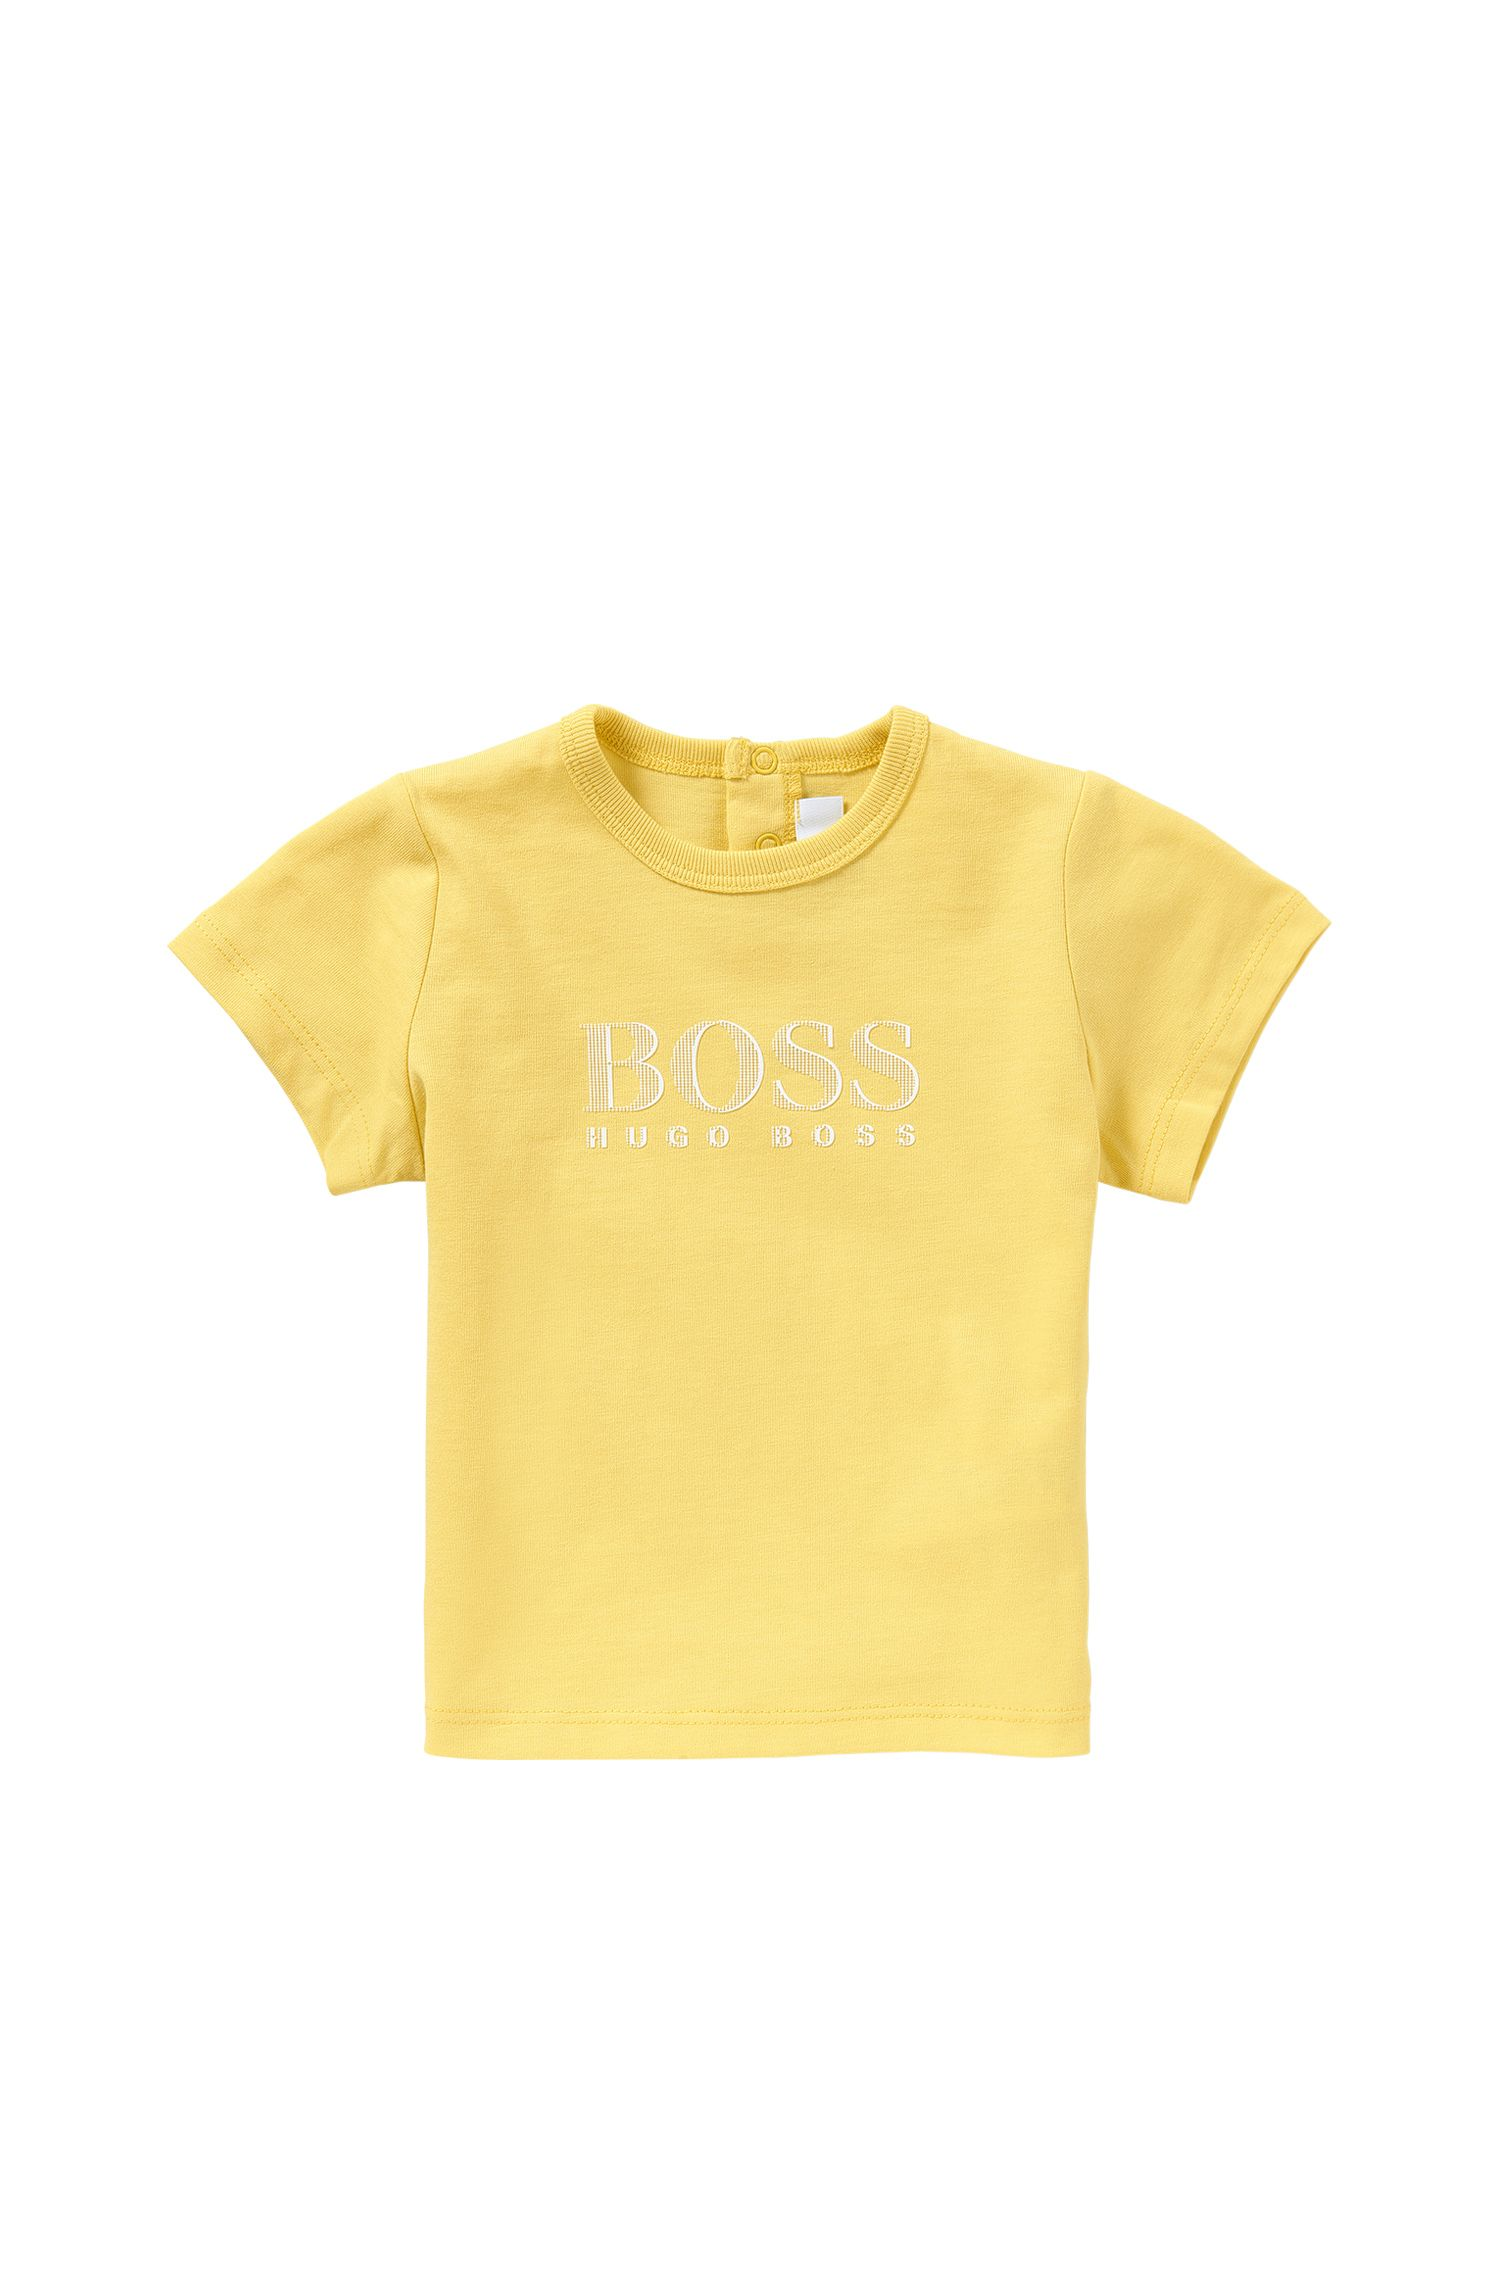 Newborn's t-shirt in cotton with printed front motif: 'J05453'